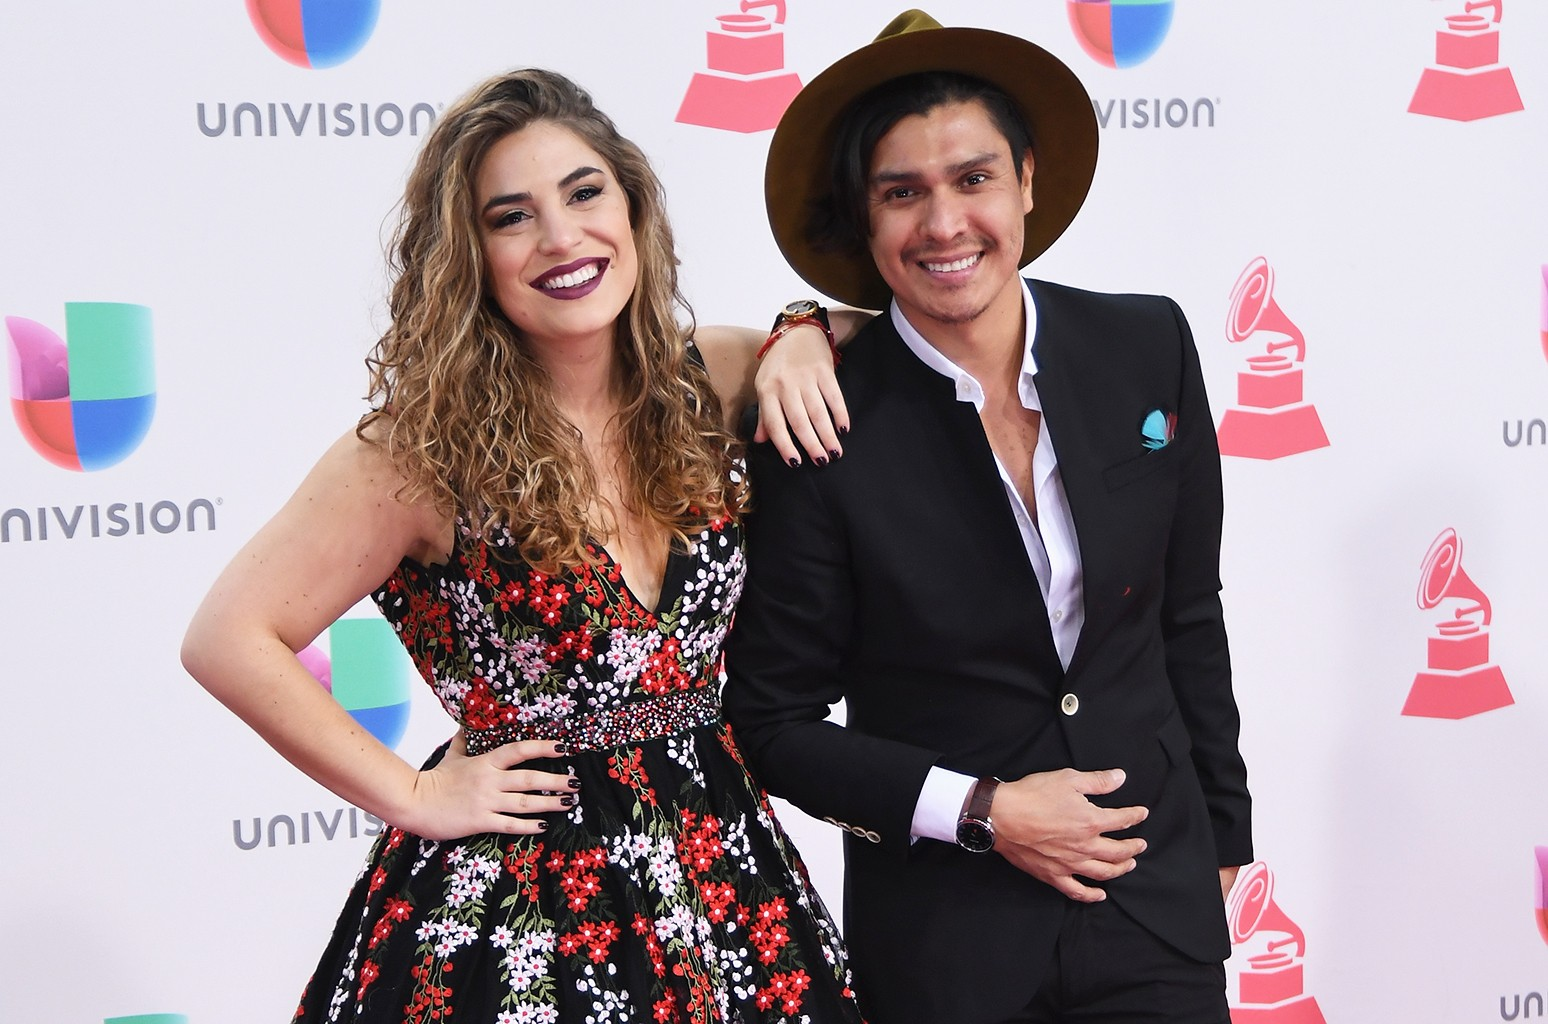 Periko and Jessi Leon attend The 17th Annual Latin Grammy Awards at T-Mobile Arena on Nov. 17, 2016 in Las Vegas.